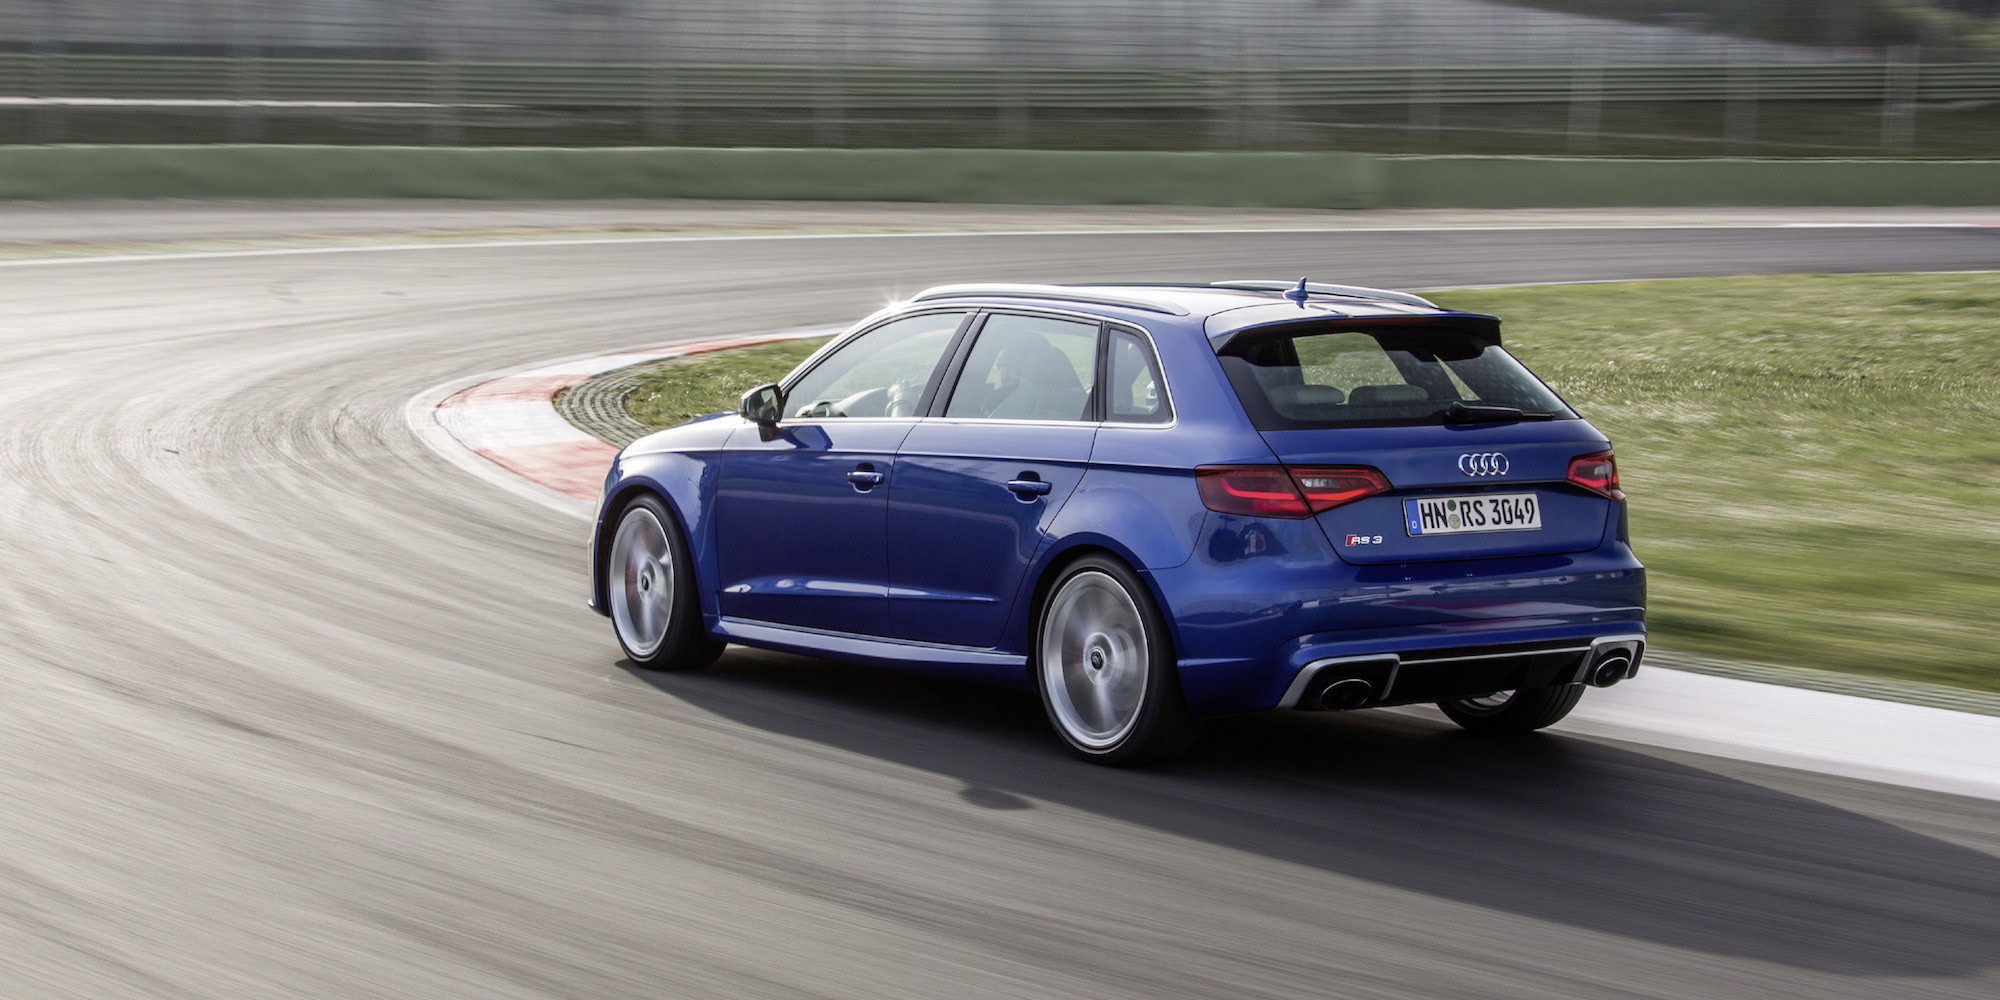 2016 Audi Rs3 Sportback Pricing And Specifications For Australia Caradvice